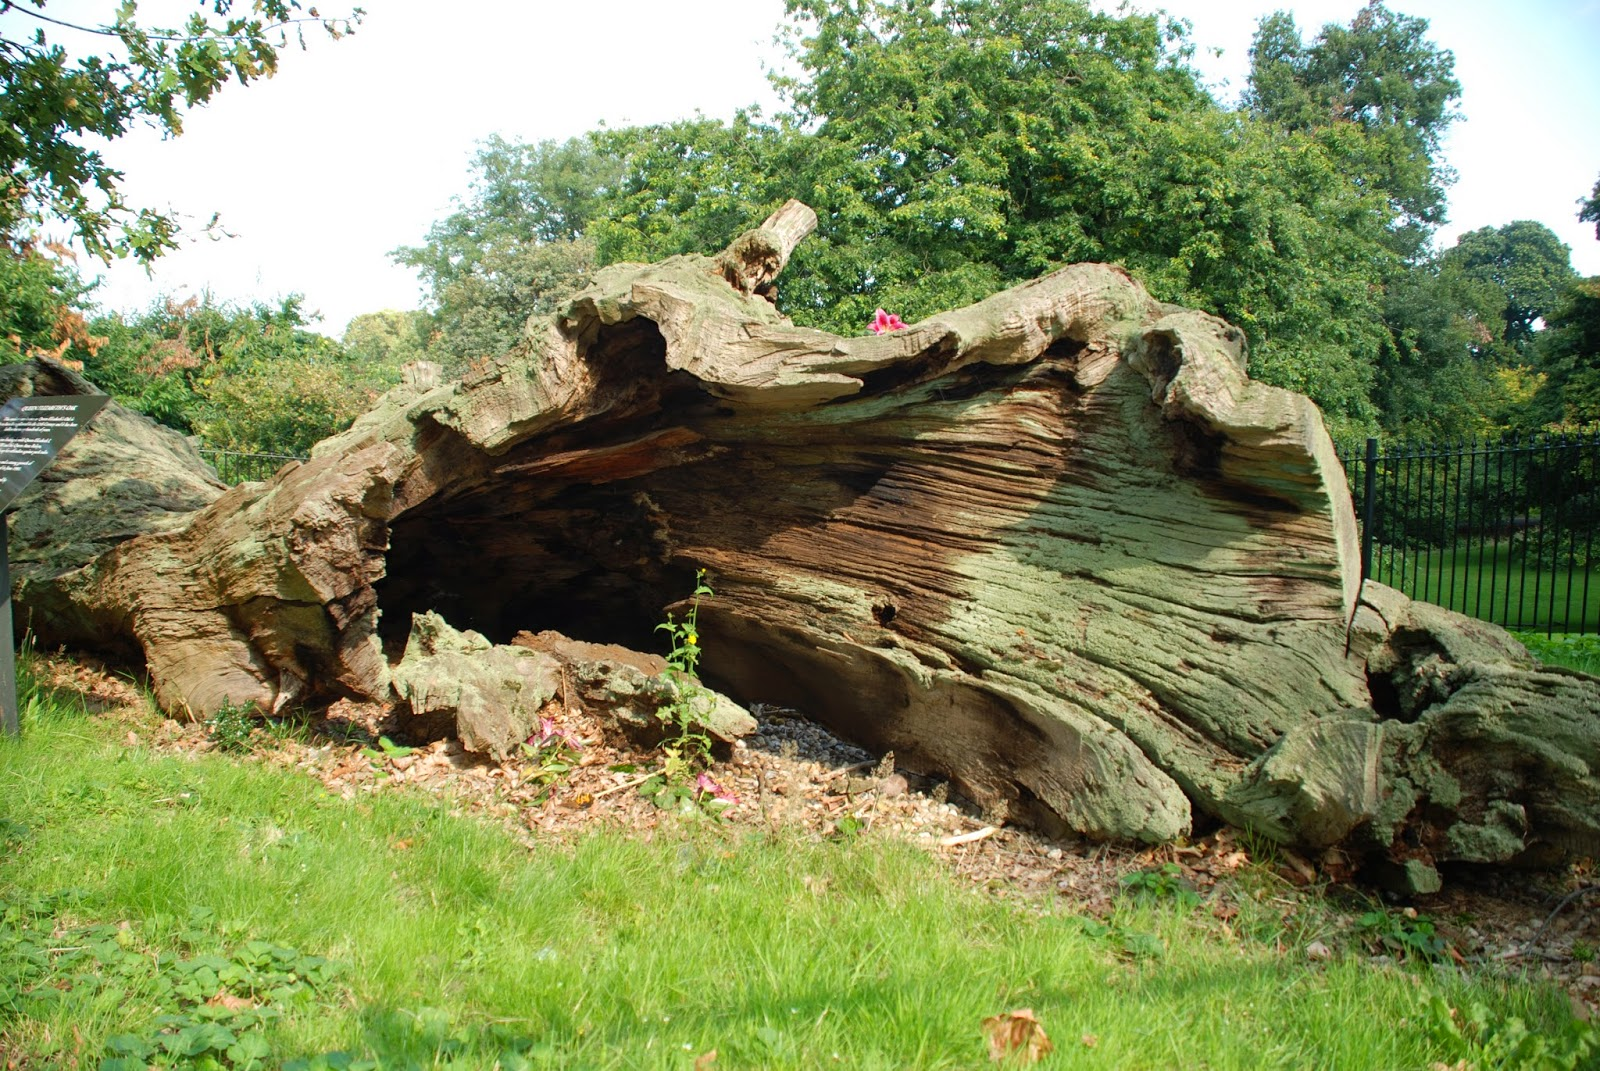 Queen Elizabeth's Oak Tree, Greenwich Park